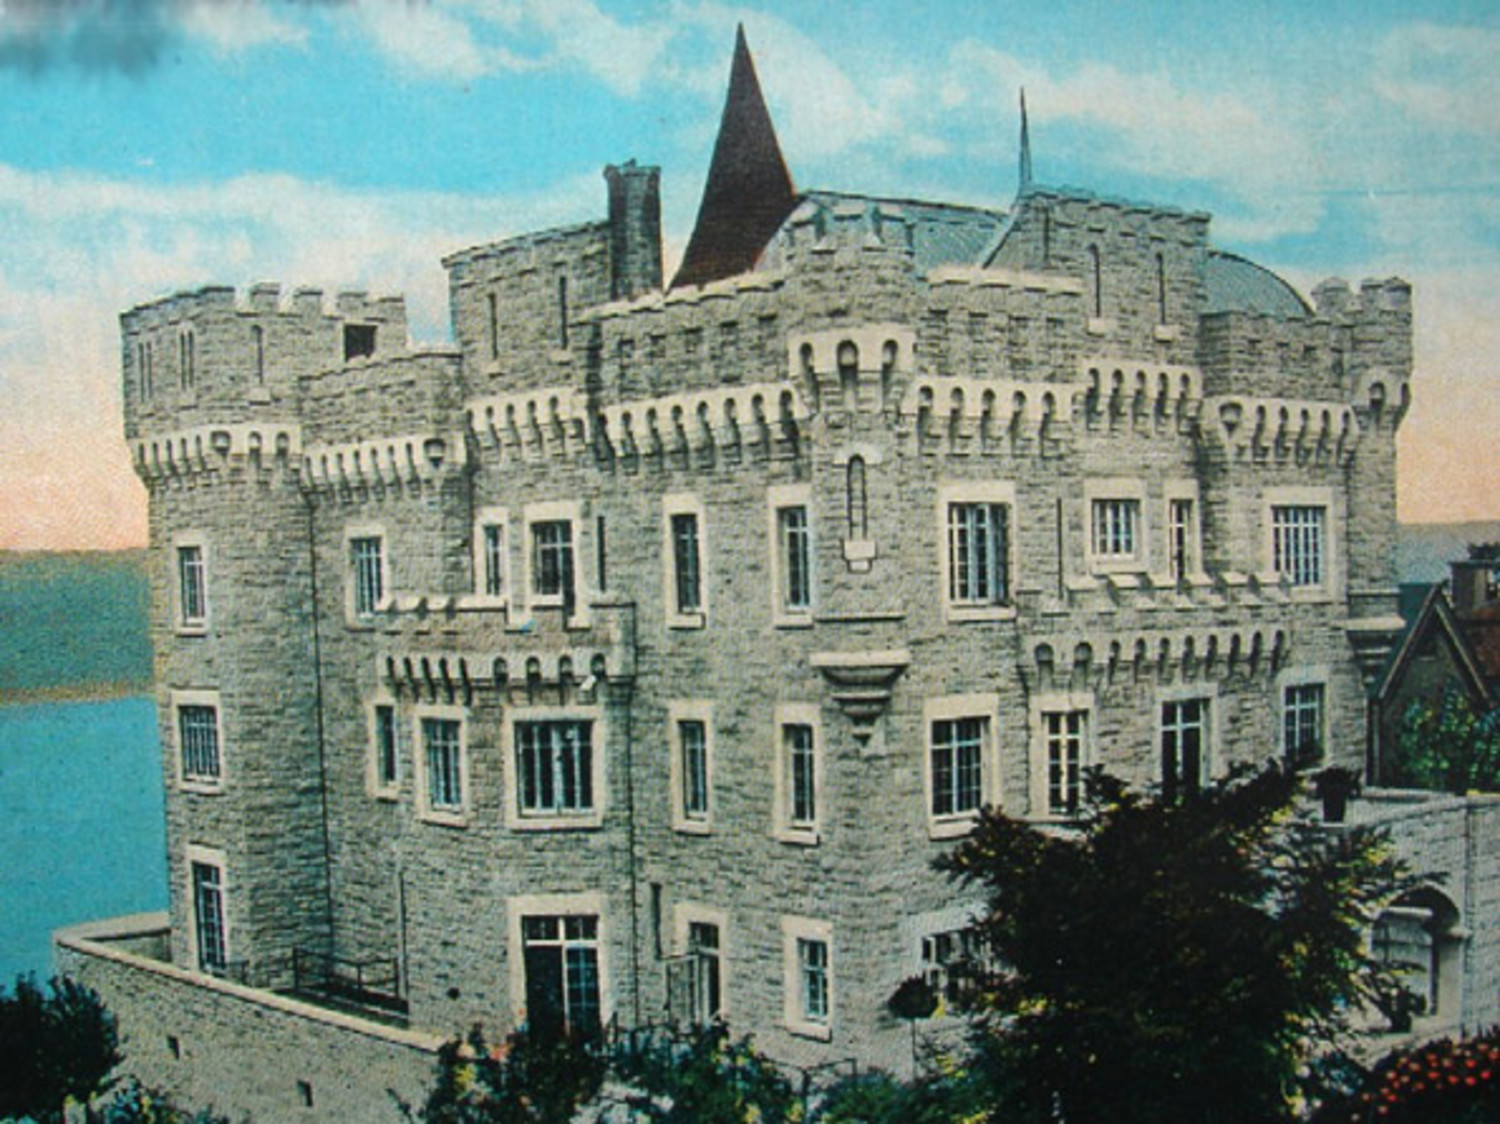 Postcard of Paterno Castle, early 1930s